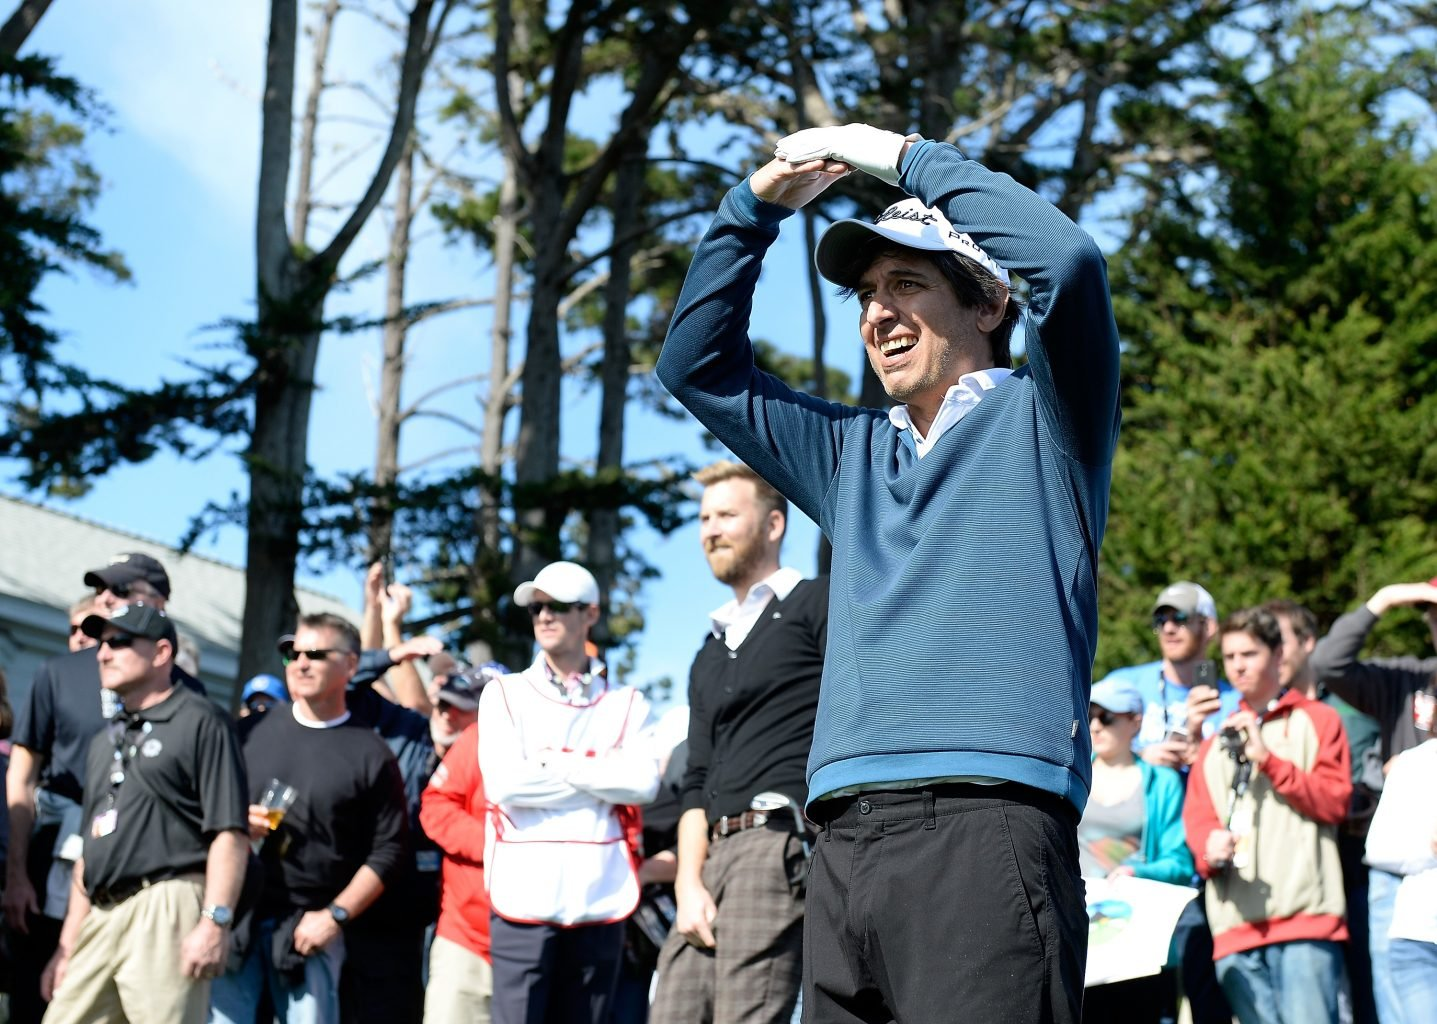 Actor Ray Romano standing with a crowd on a golf course